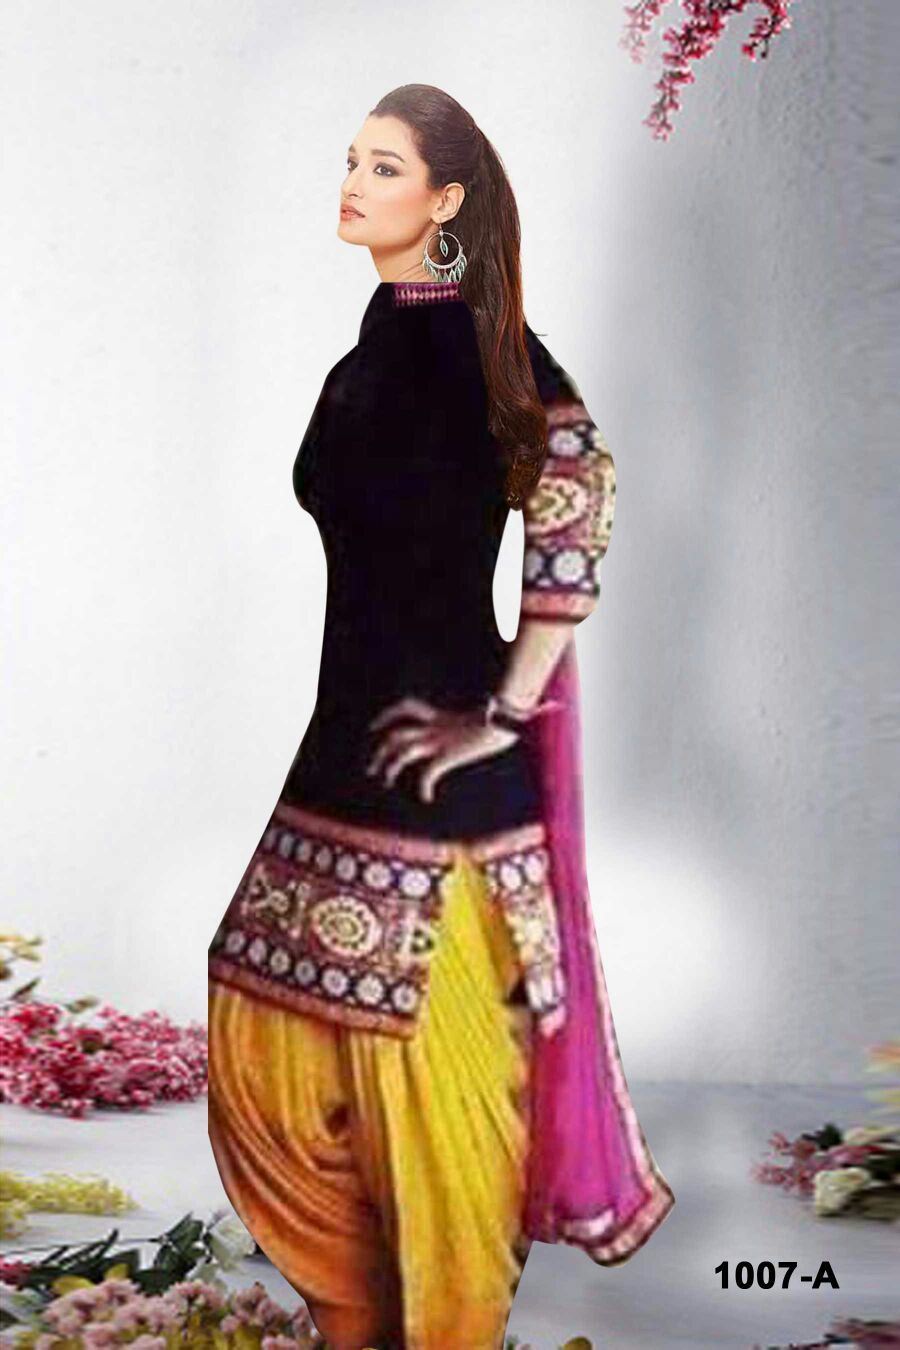 83cc8c985 Designer Fency Patiyala Suit Price:1099 COD available Contact:9033784546  Email: texstilearena111@.